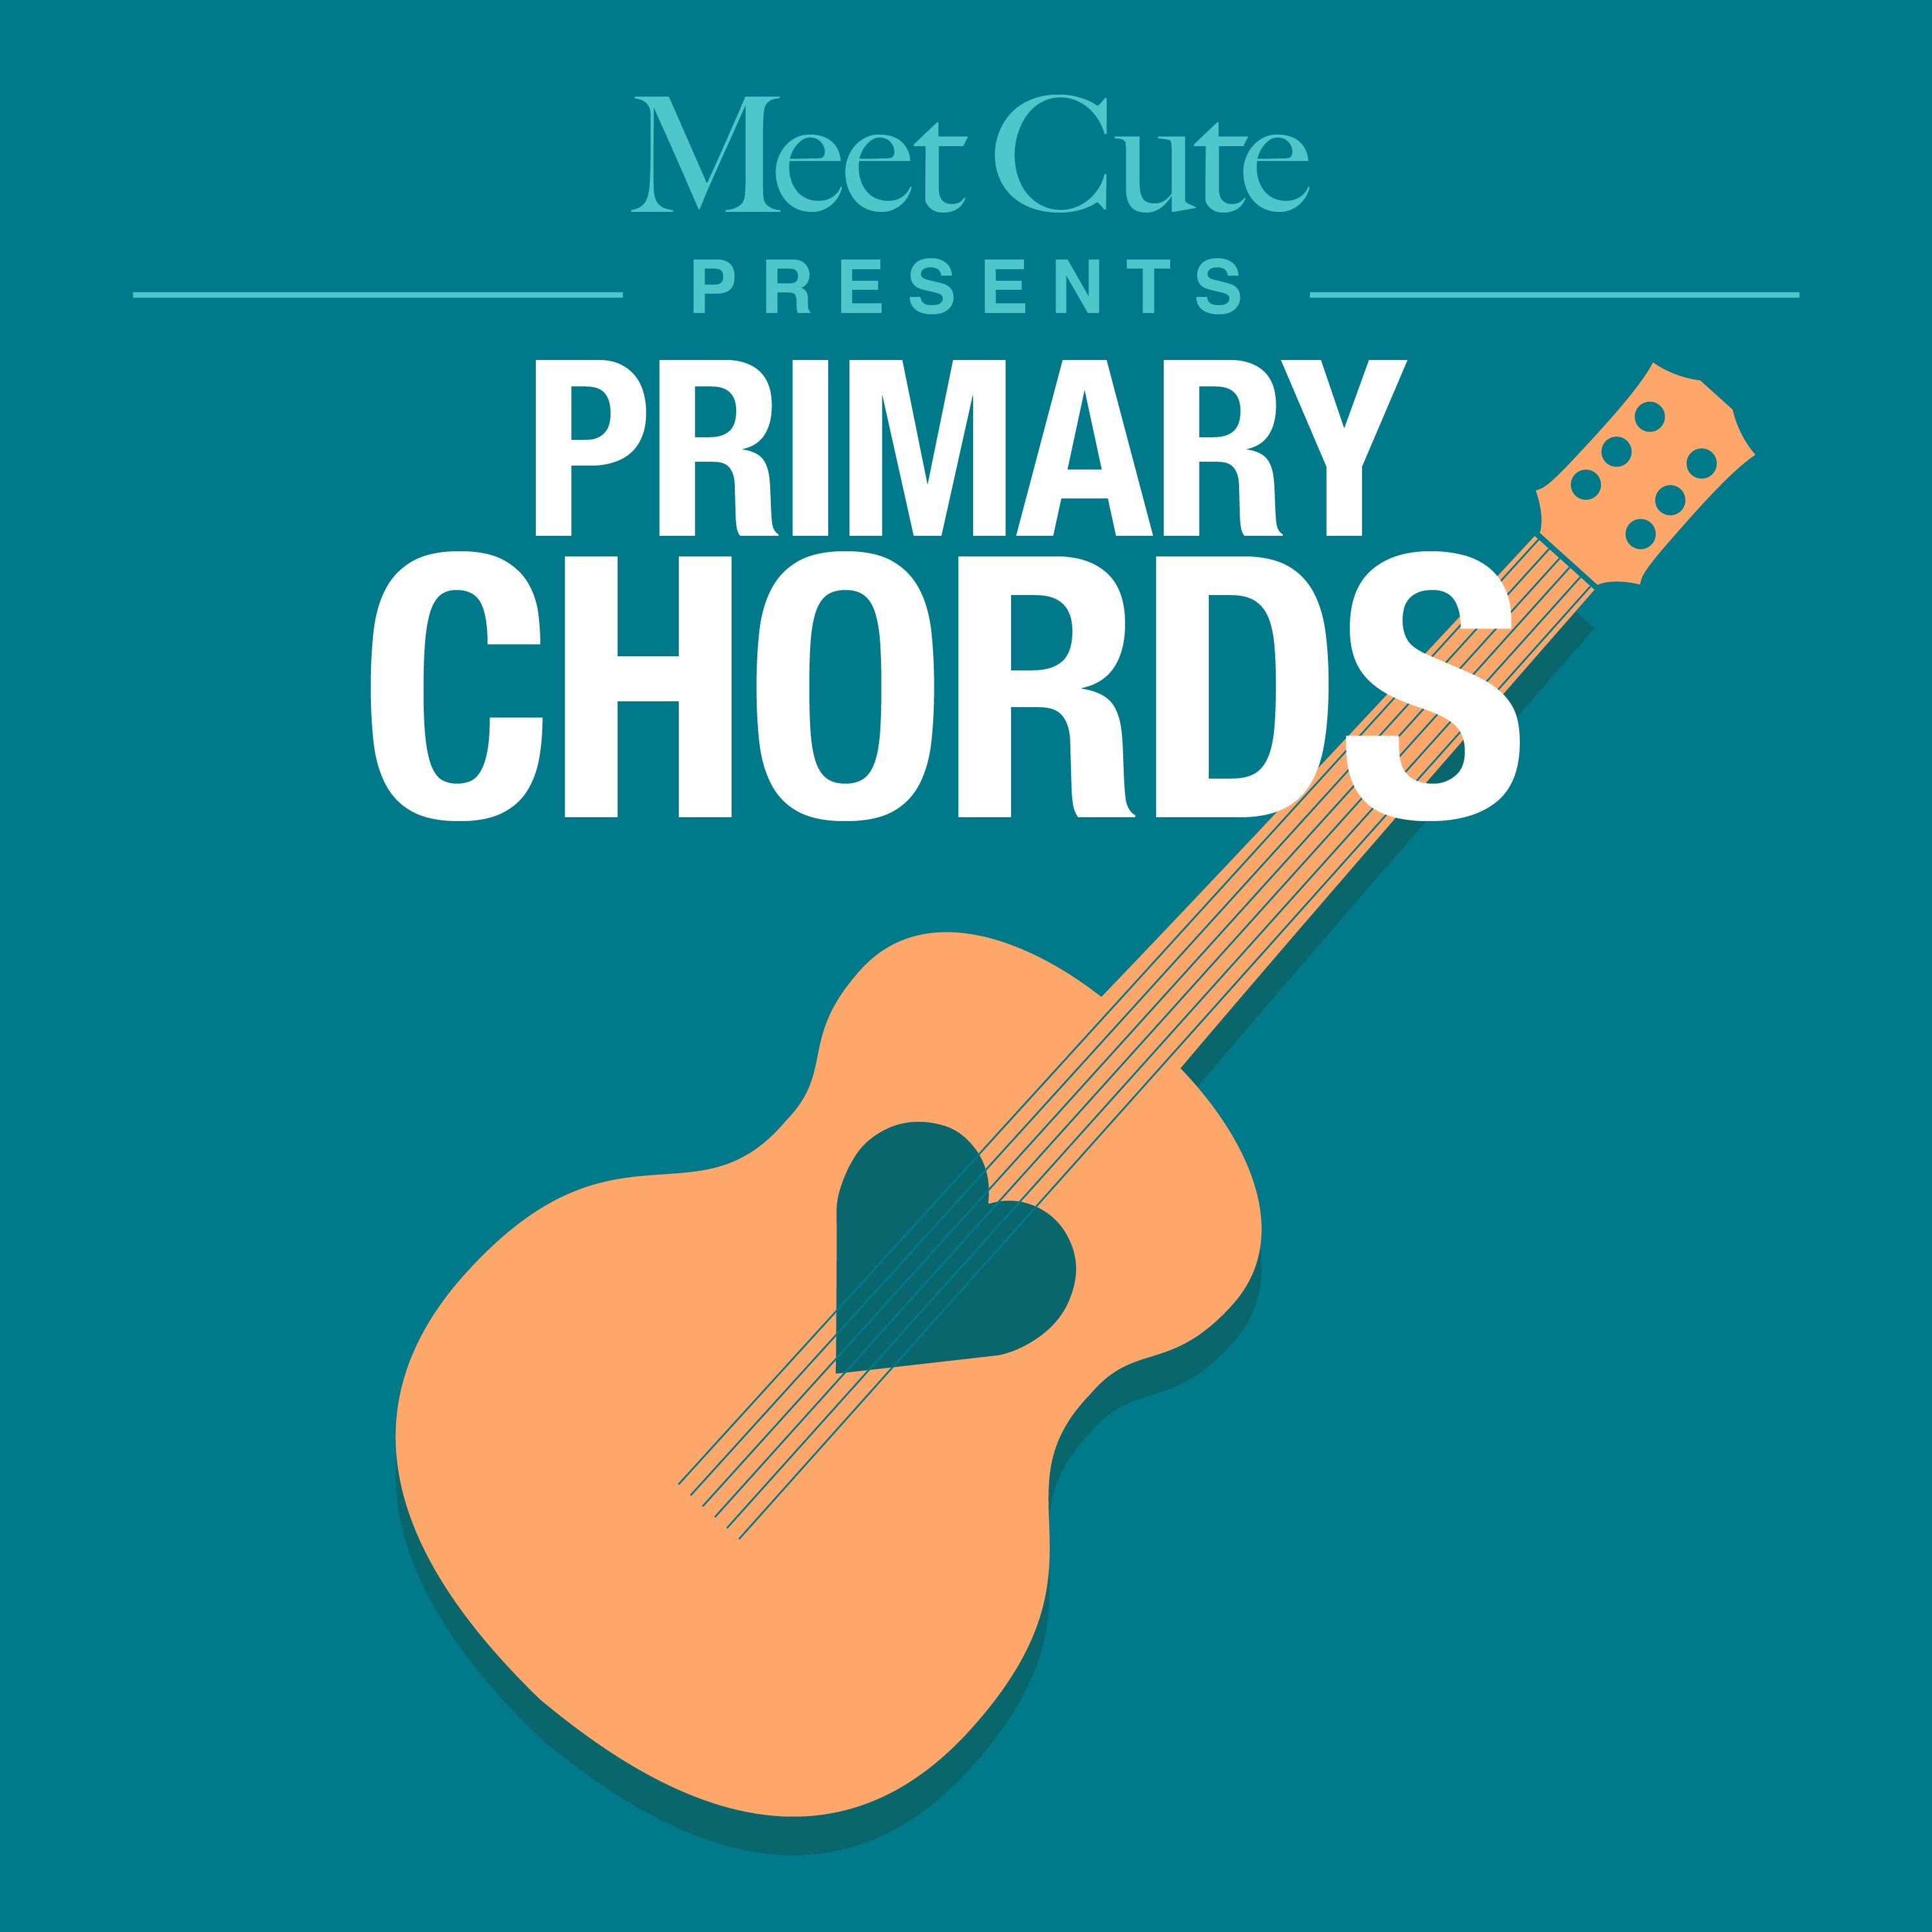 Primary Chords